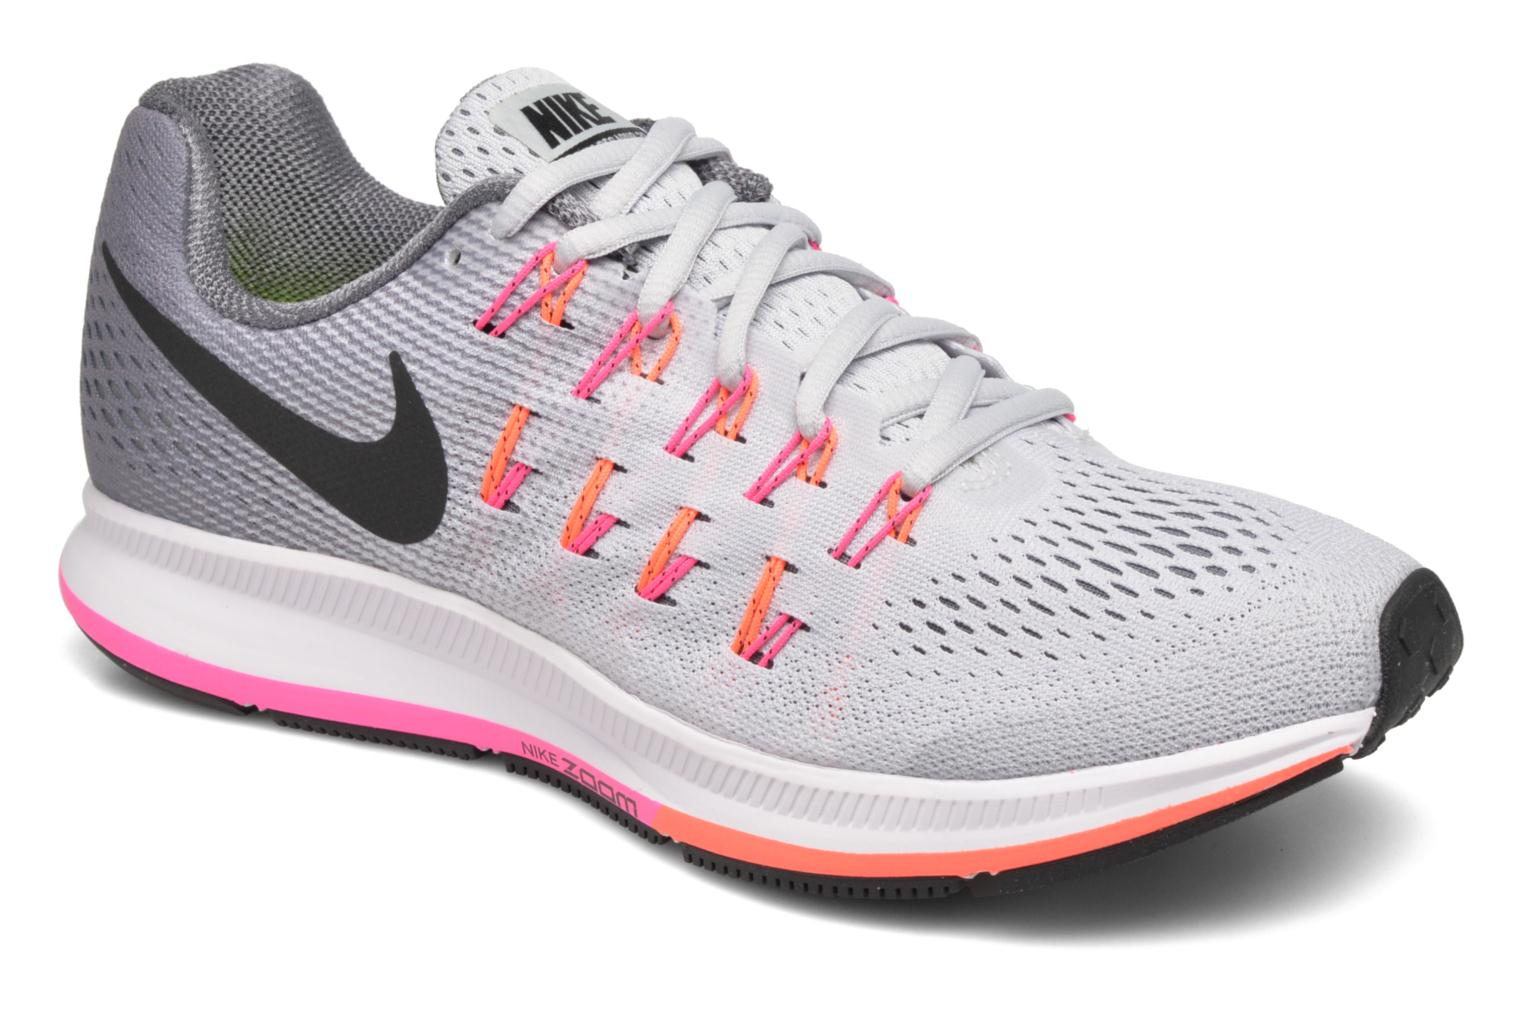 Wmns Nike Air Zoom Pegasus 33 Pure Platinum/Black-Cool Grey-Pink Blast